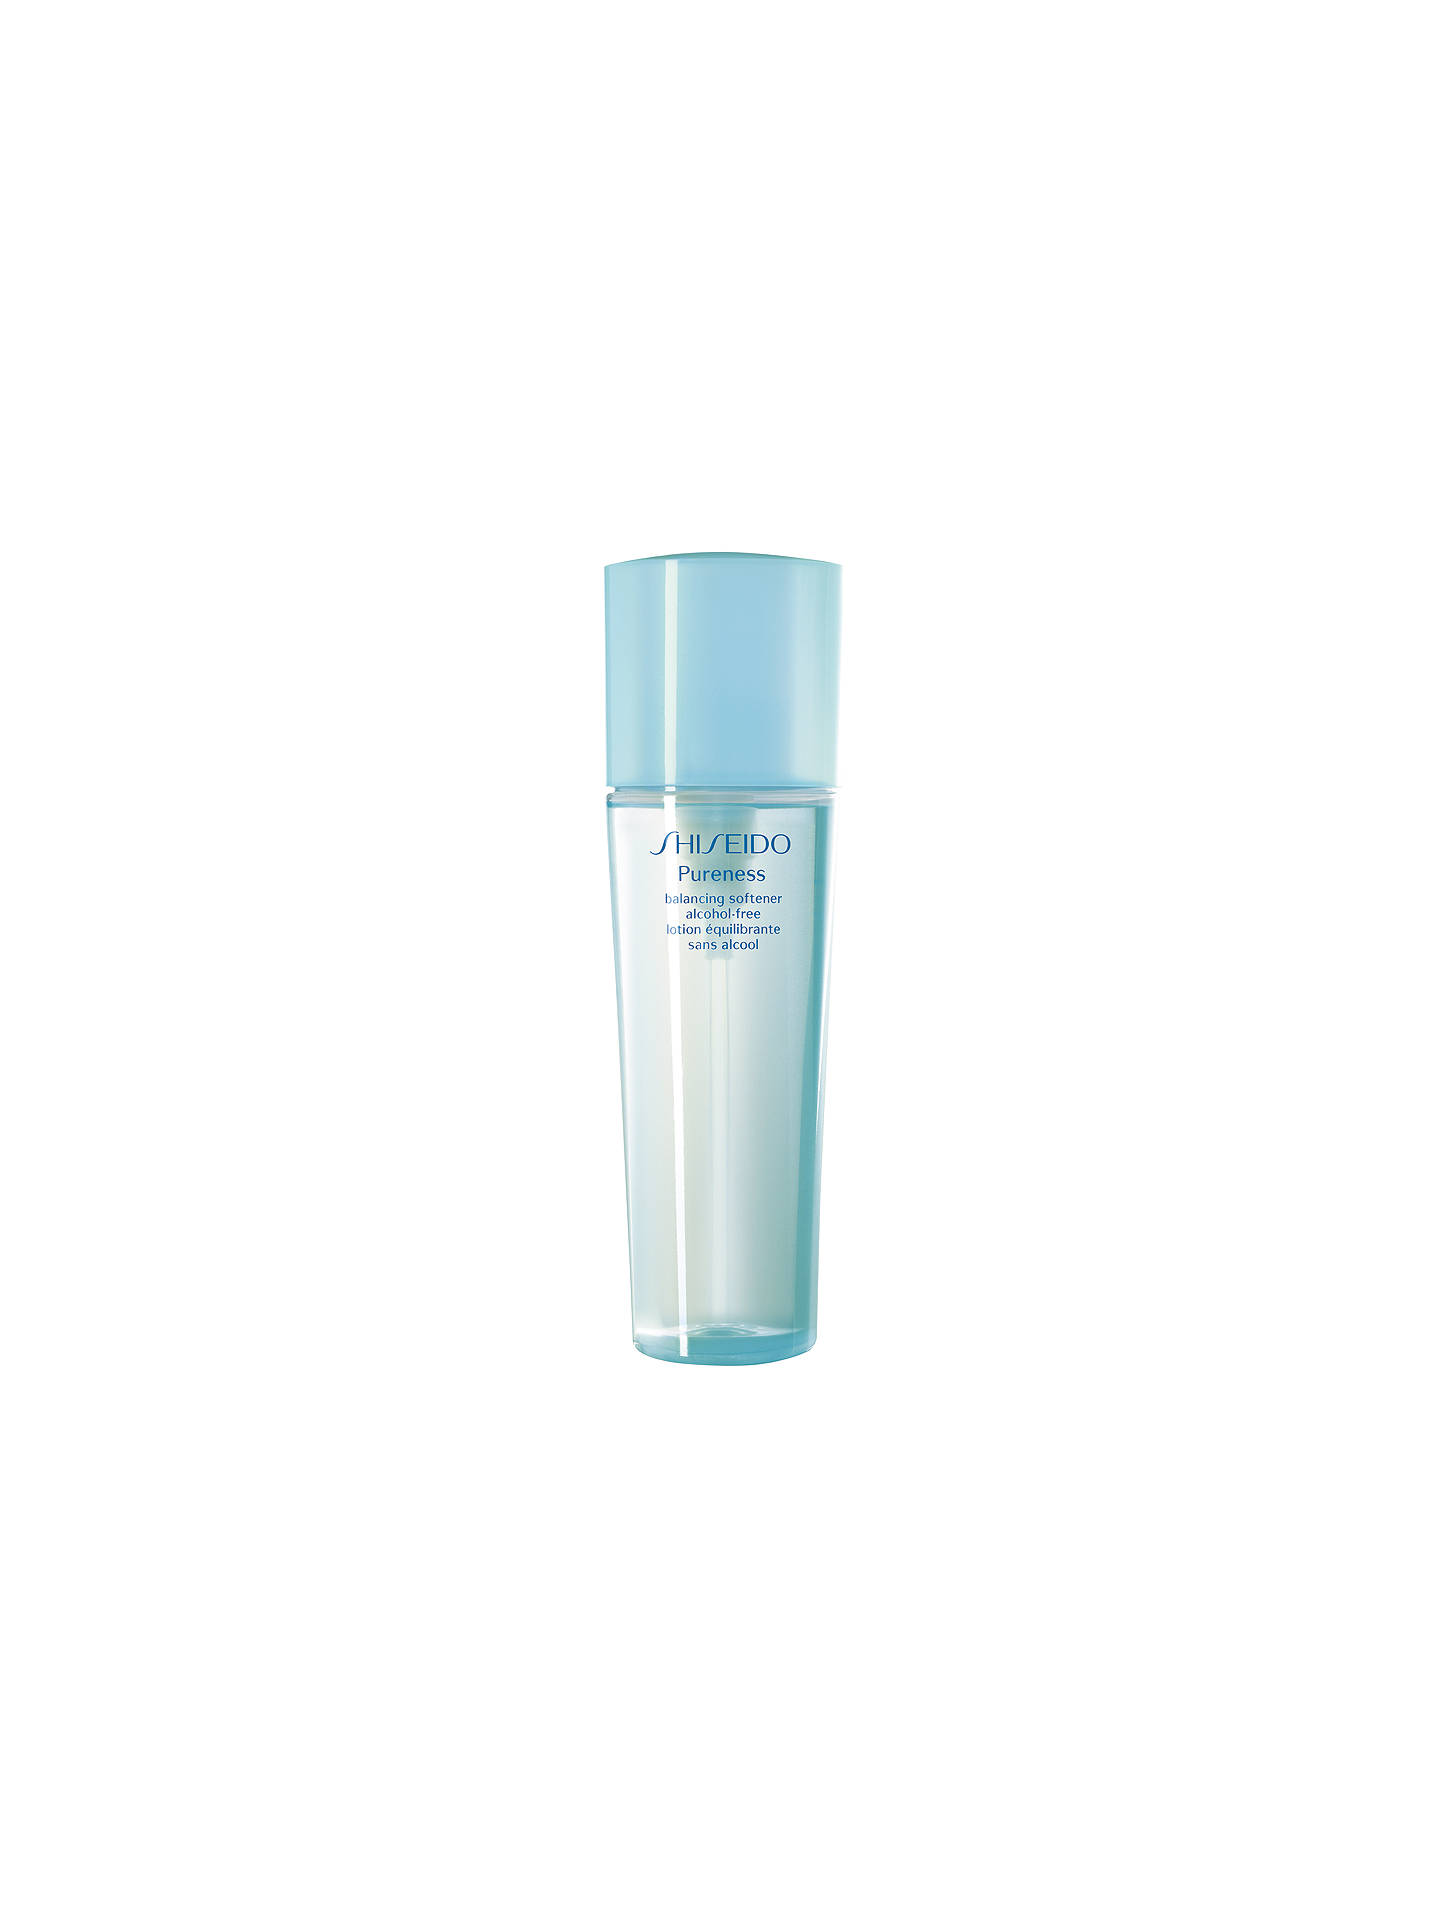 BuyShiseido Pureness Balancing Softener, 150ml Online at johnlewis.com